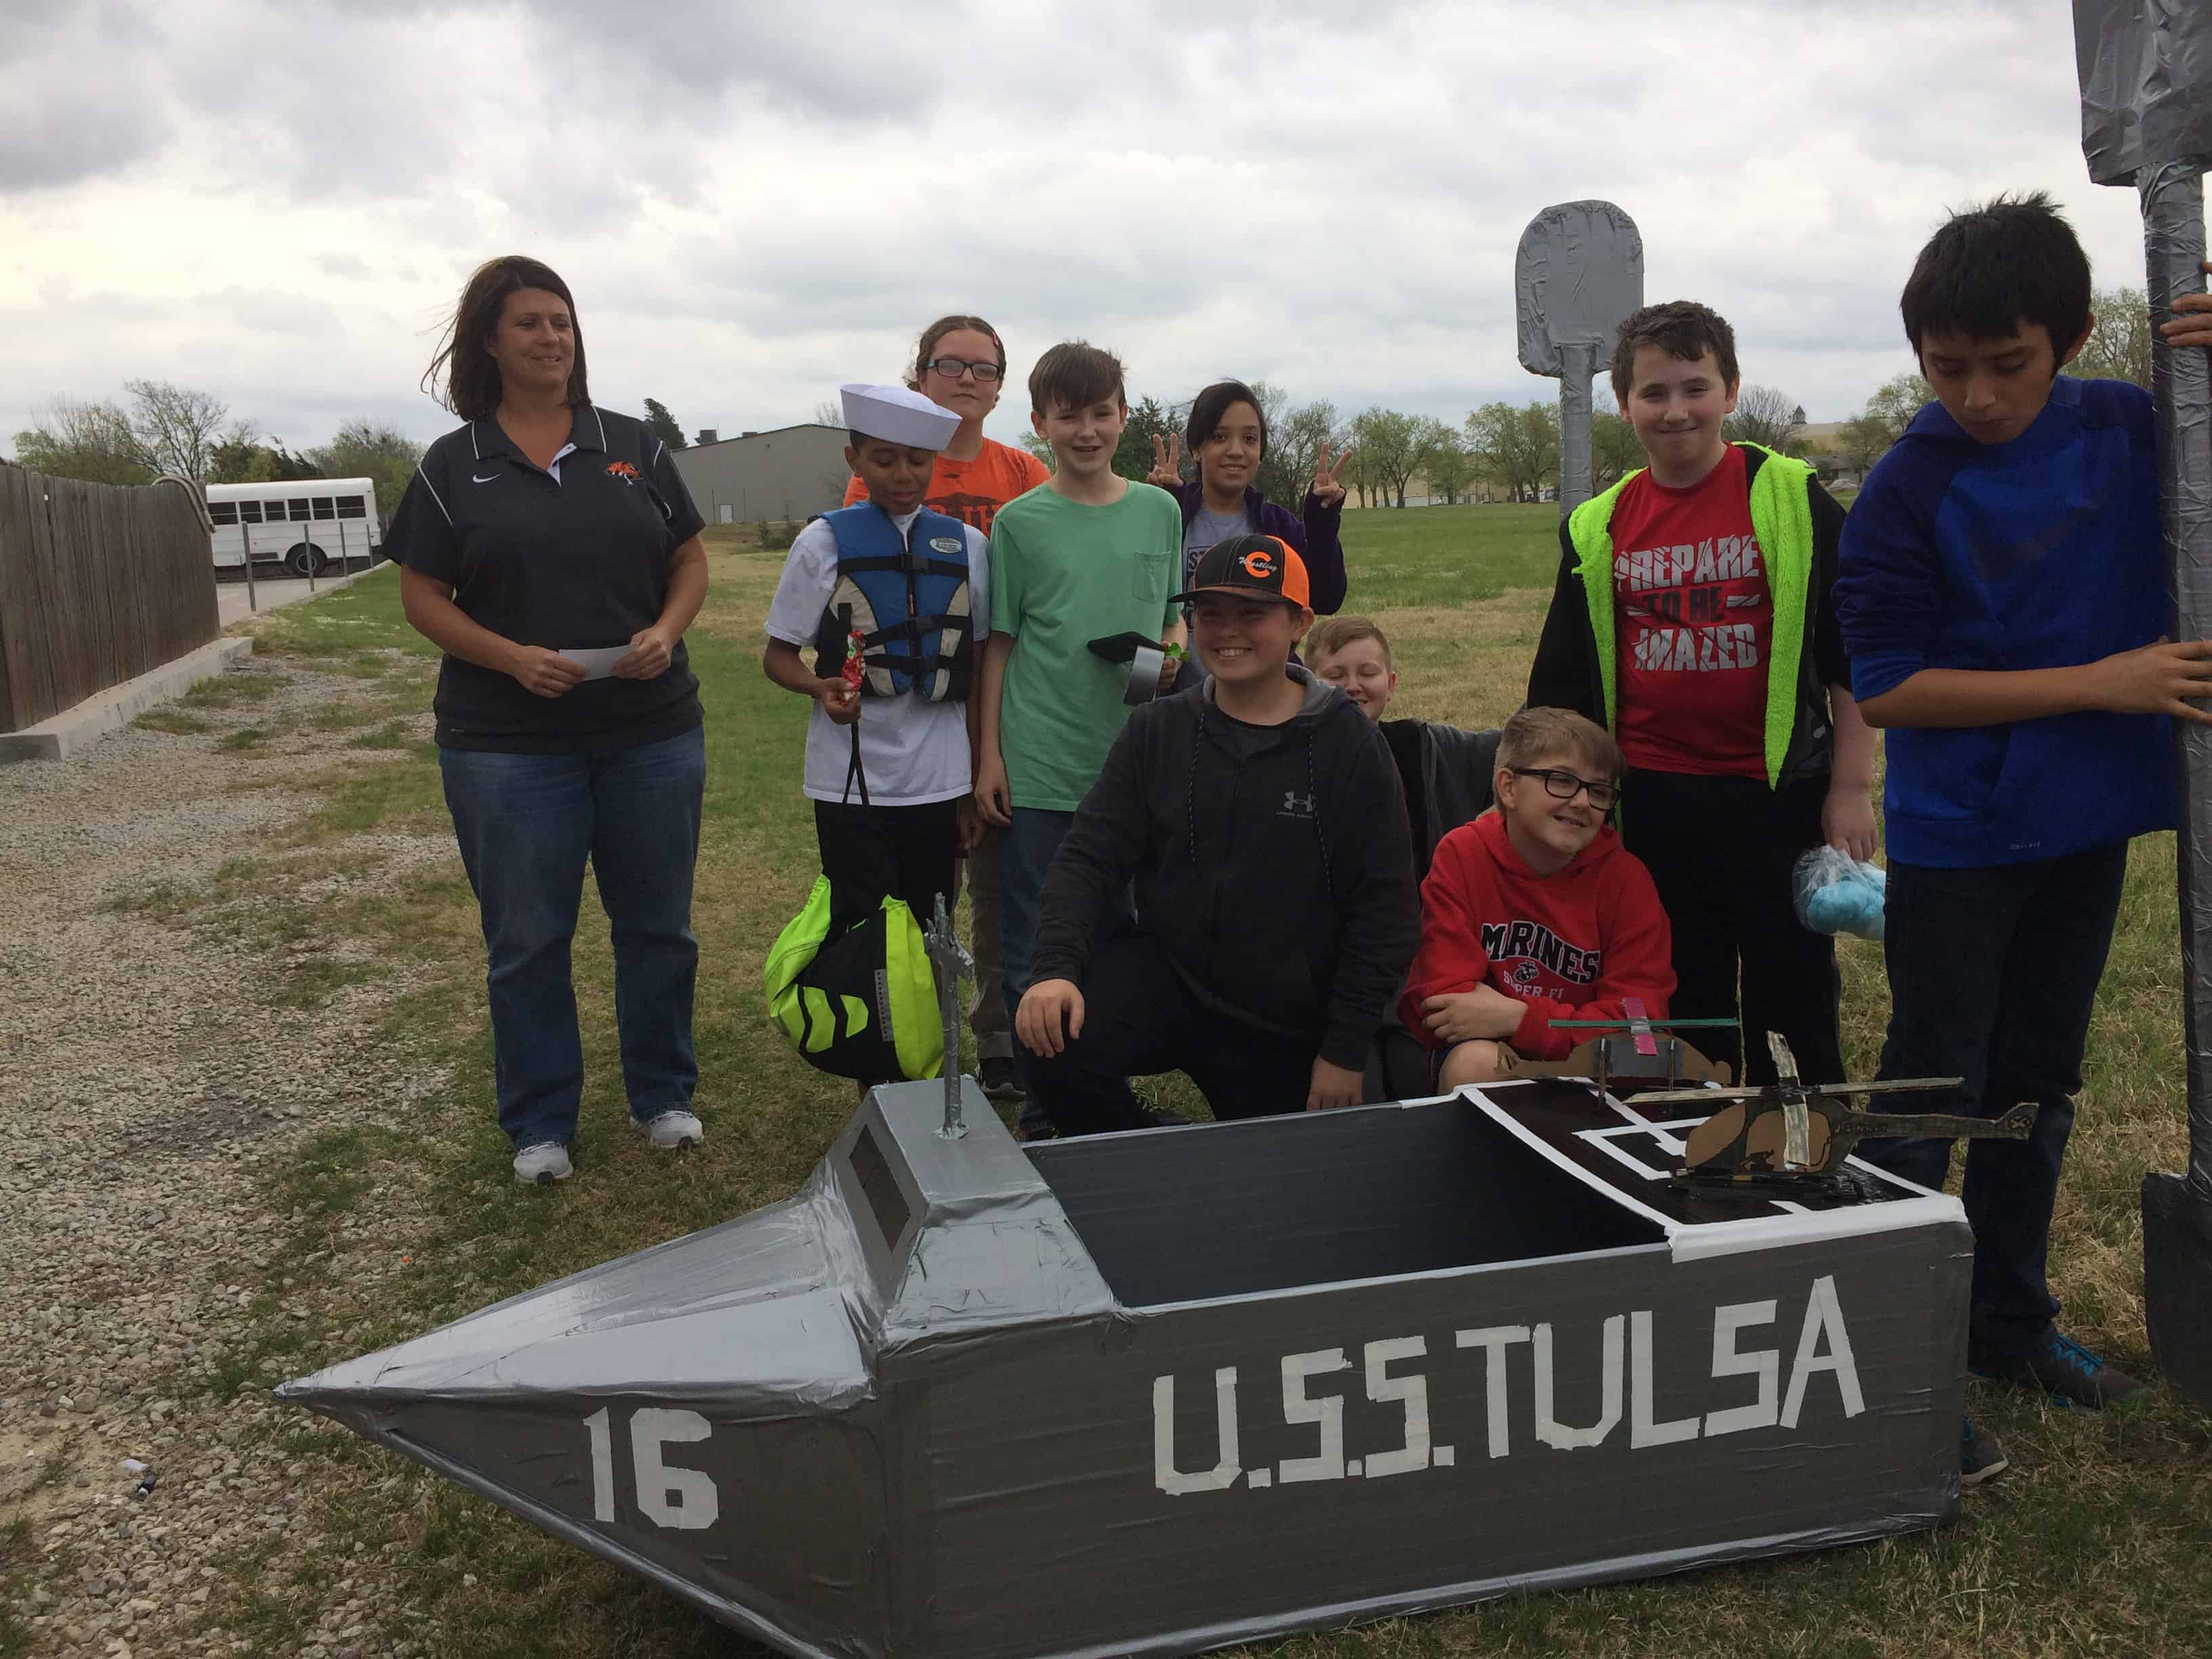 Students pose with their replica of the U.S.S. Tulsa in the 2017 Cardboard and Duct Tape Boat Regatta